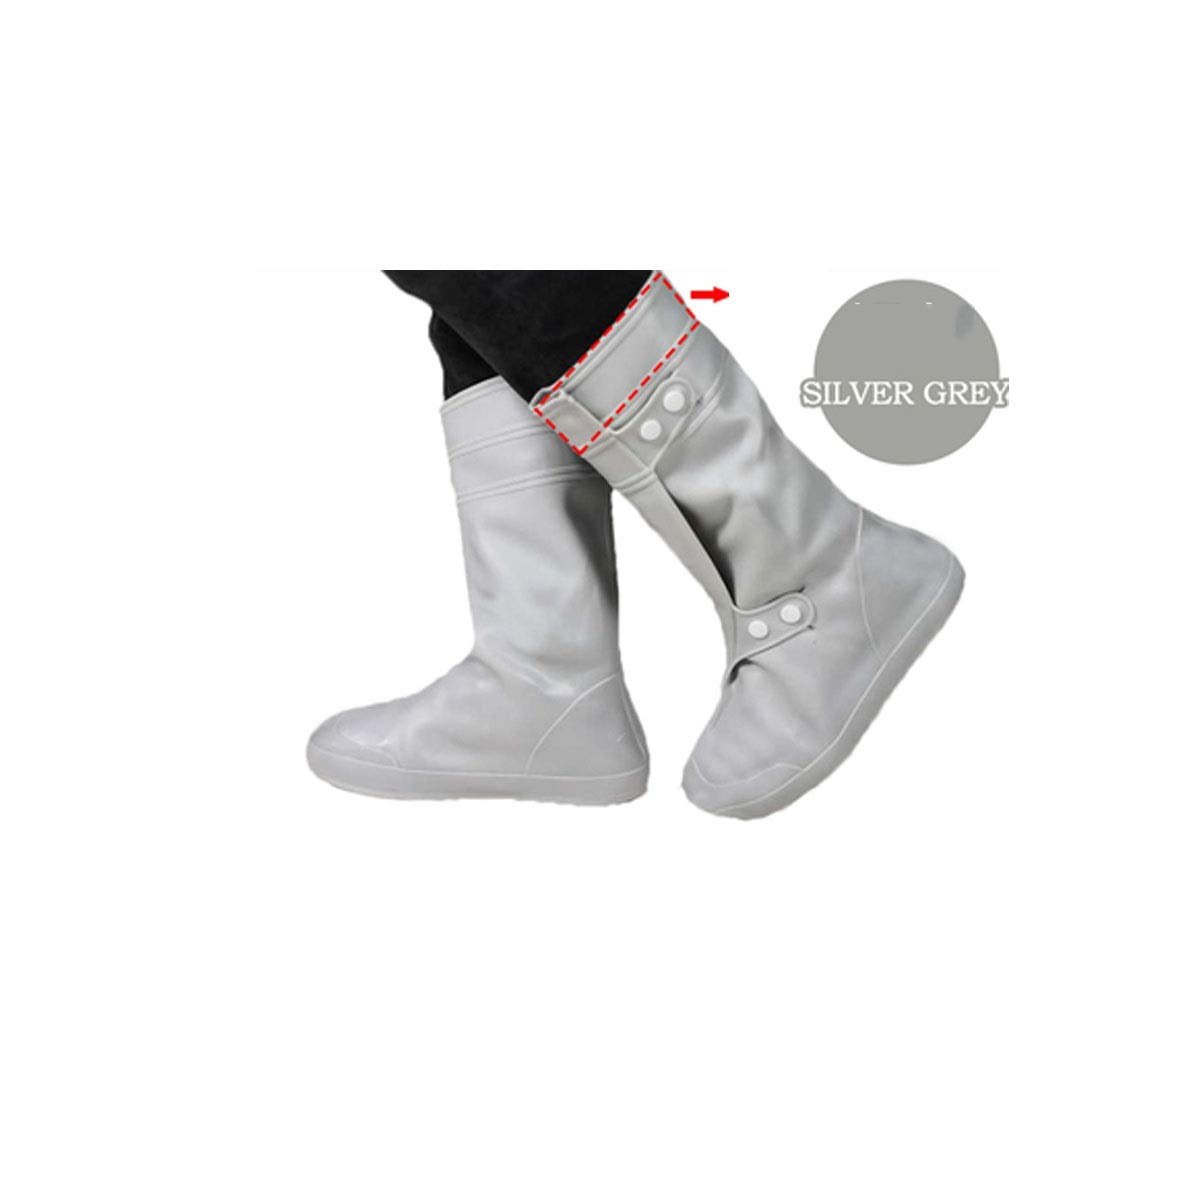 WUHUIZHENJINGXIAOBU Shoe Cover, Rain Shoe Cover, High Tube Wear Rubber Outdoor Motorcycle Rain Men and Women Non-Slip Foot Cover, More Colors Shoe Covers That can be Worn on Rainy Days,